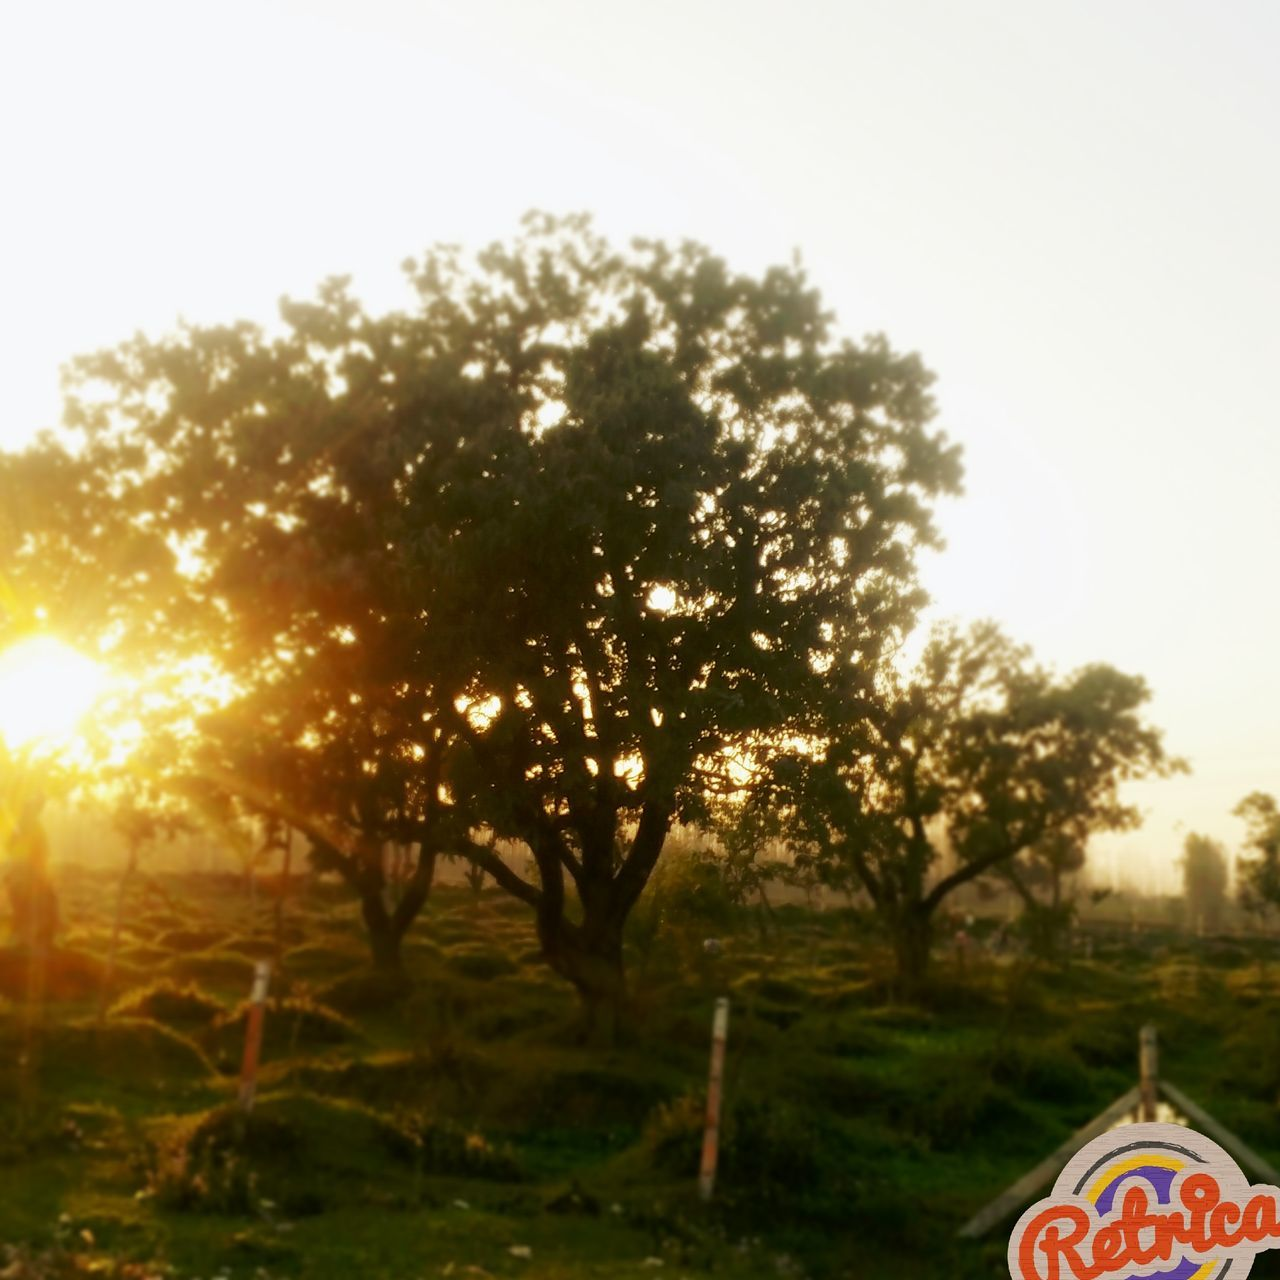 tree, lens flare, nature, growth, no people, beauty in nature, outdoors, sky, day, close-up